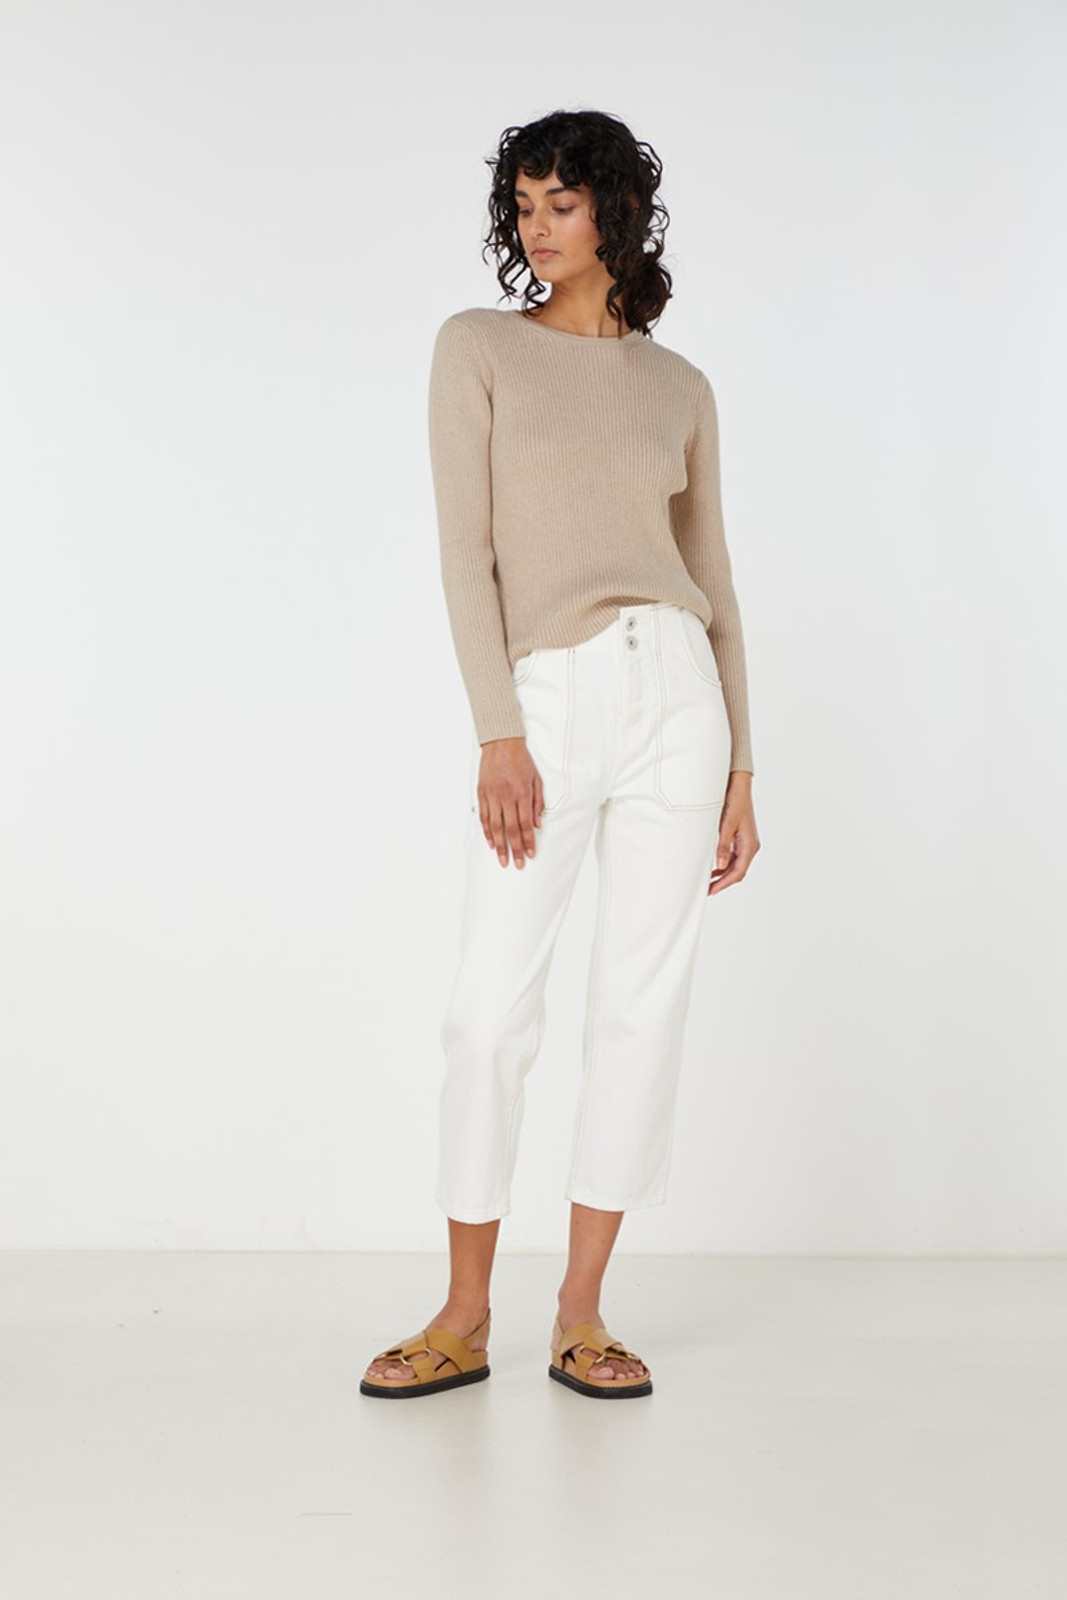 Elka Collective Houston Knit Neutrals  1